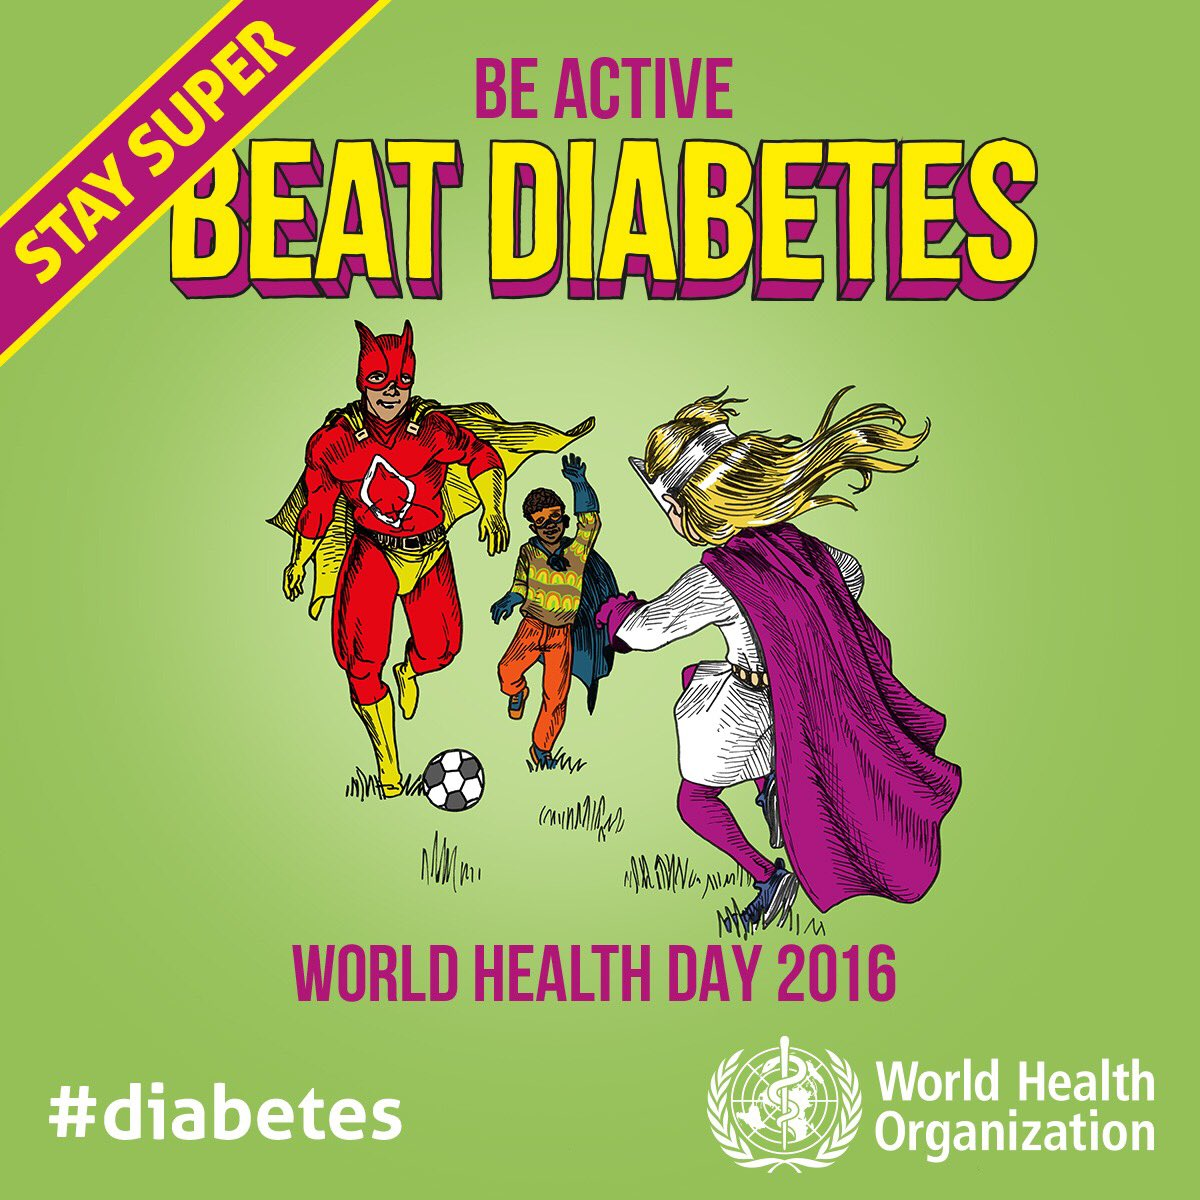 RT @WHO: Today is #WorldHealthDay! Type 2 #diabetes is largely preventable. We can beat it! https://t.co/o6WaIrBtnh https://t.co/rGLy59NneK